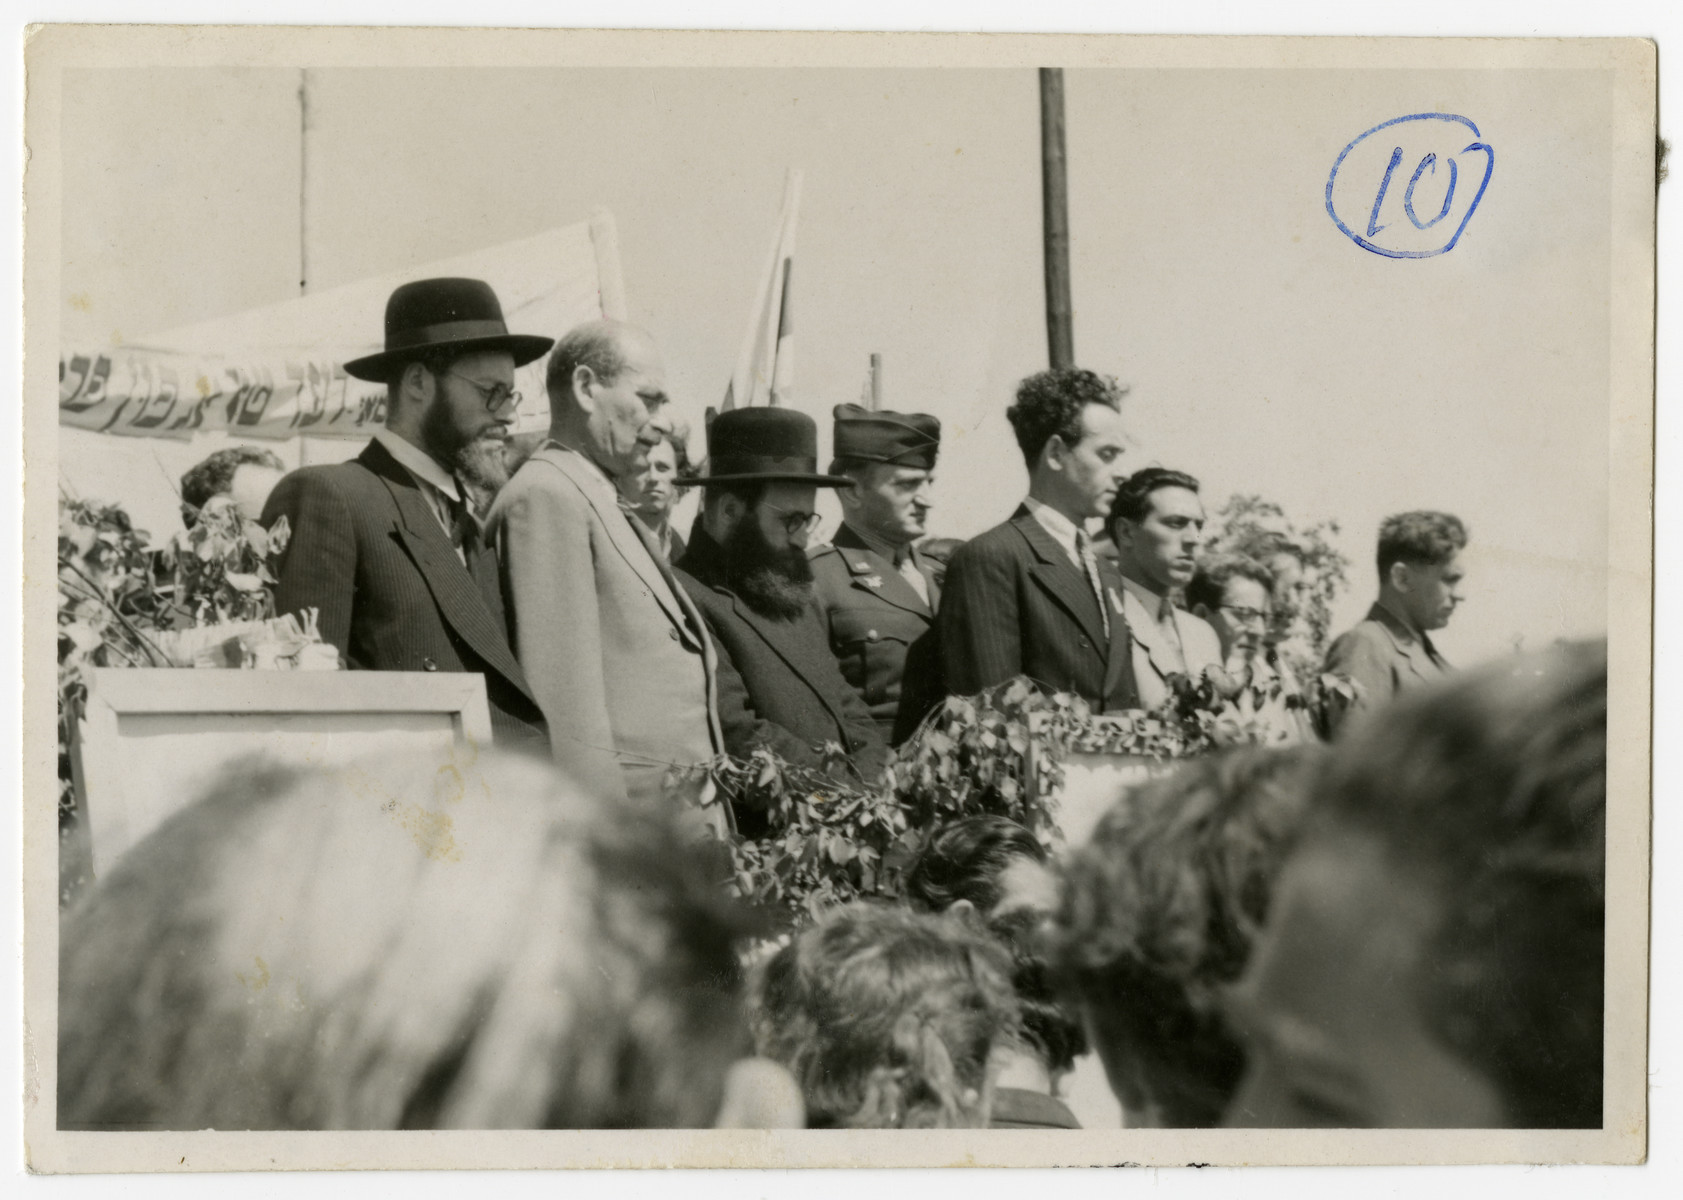 Solomon Manischewitz, standing center in a striped suit, leads a crowd assembled in singing the Hatikva on the day of the Proclamation of the State of Israel.